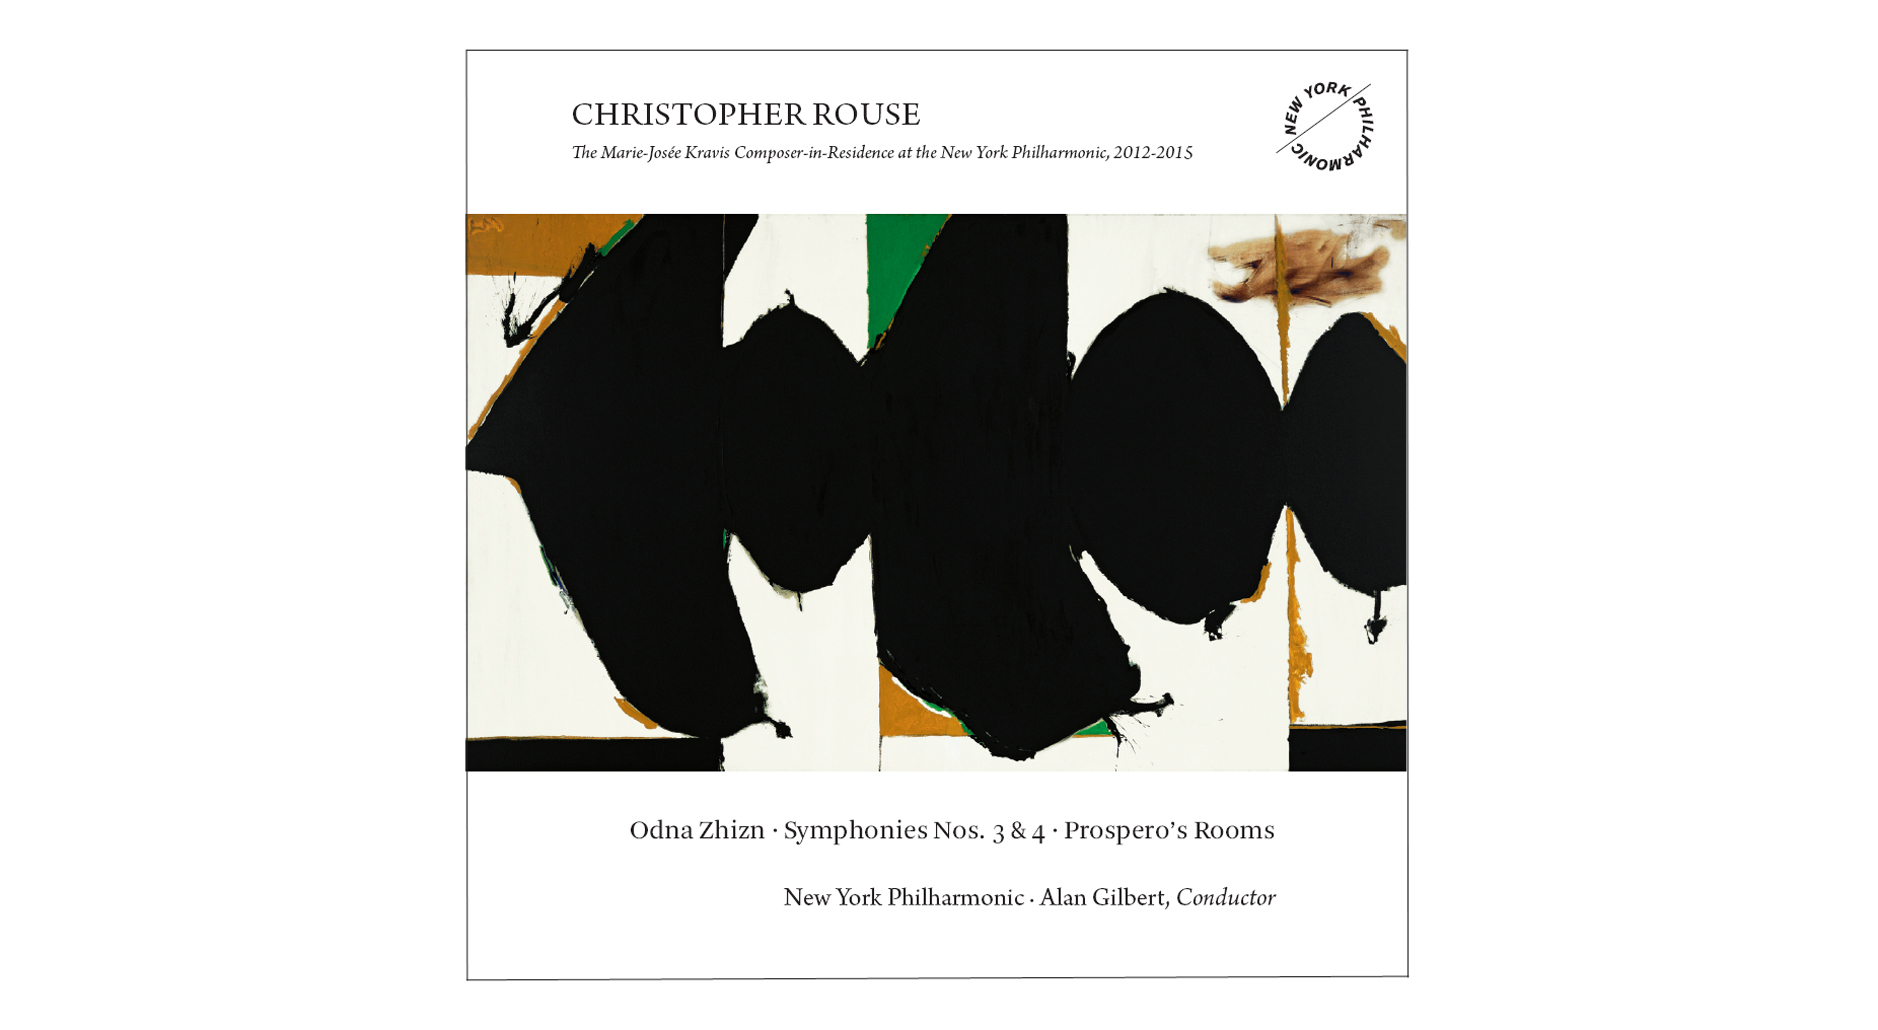 NY Philharmonic Christopher Rouse Grammy Award